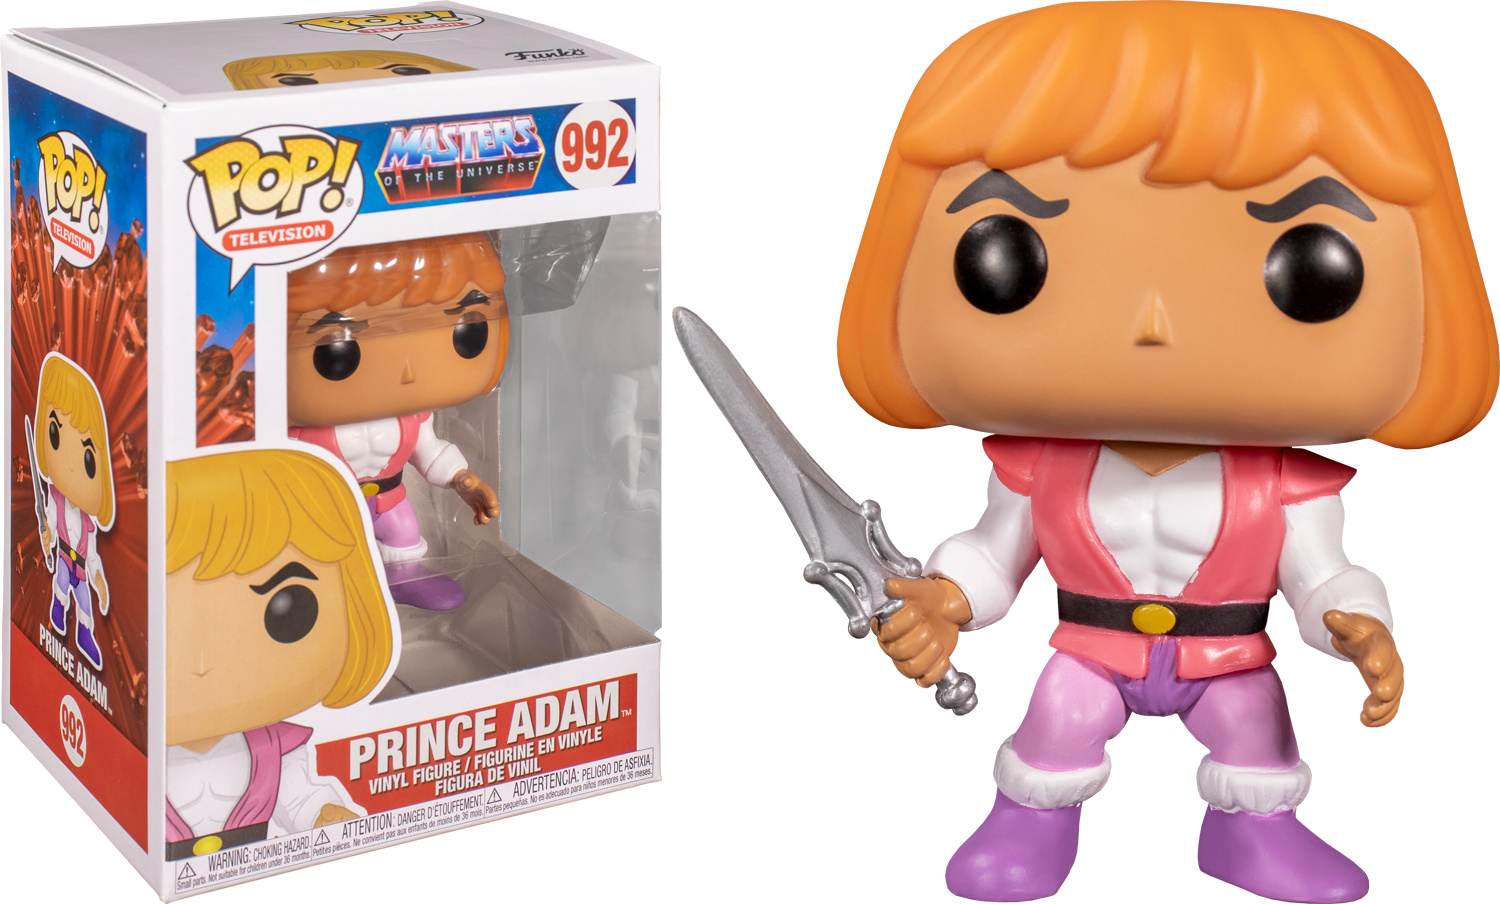 Masters of the Universe - Prince Adam Funko Pop! Vinyl Figure